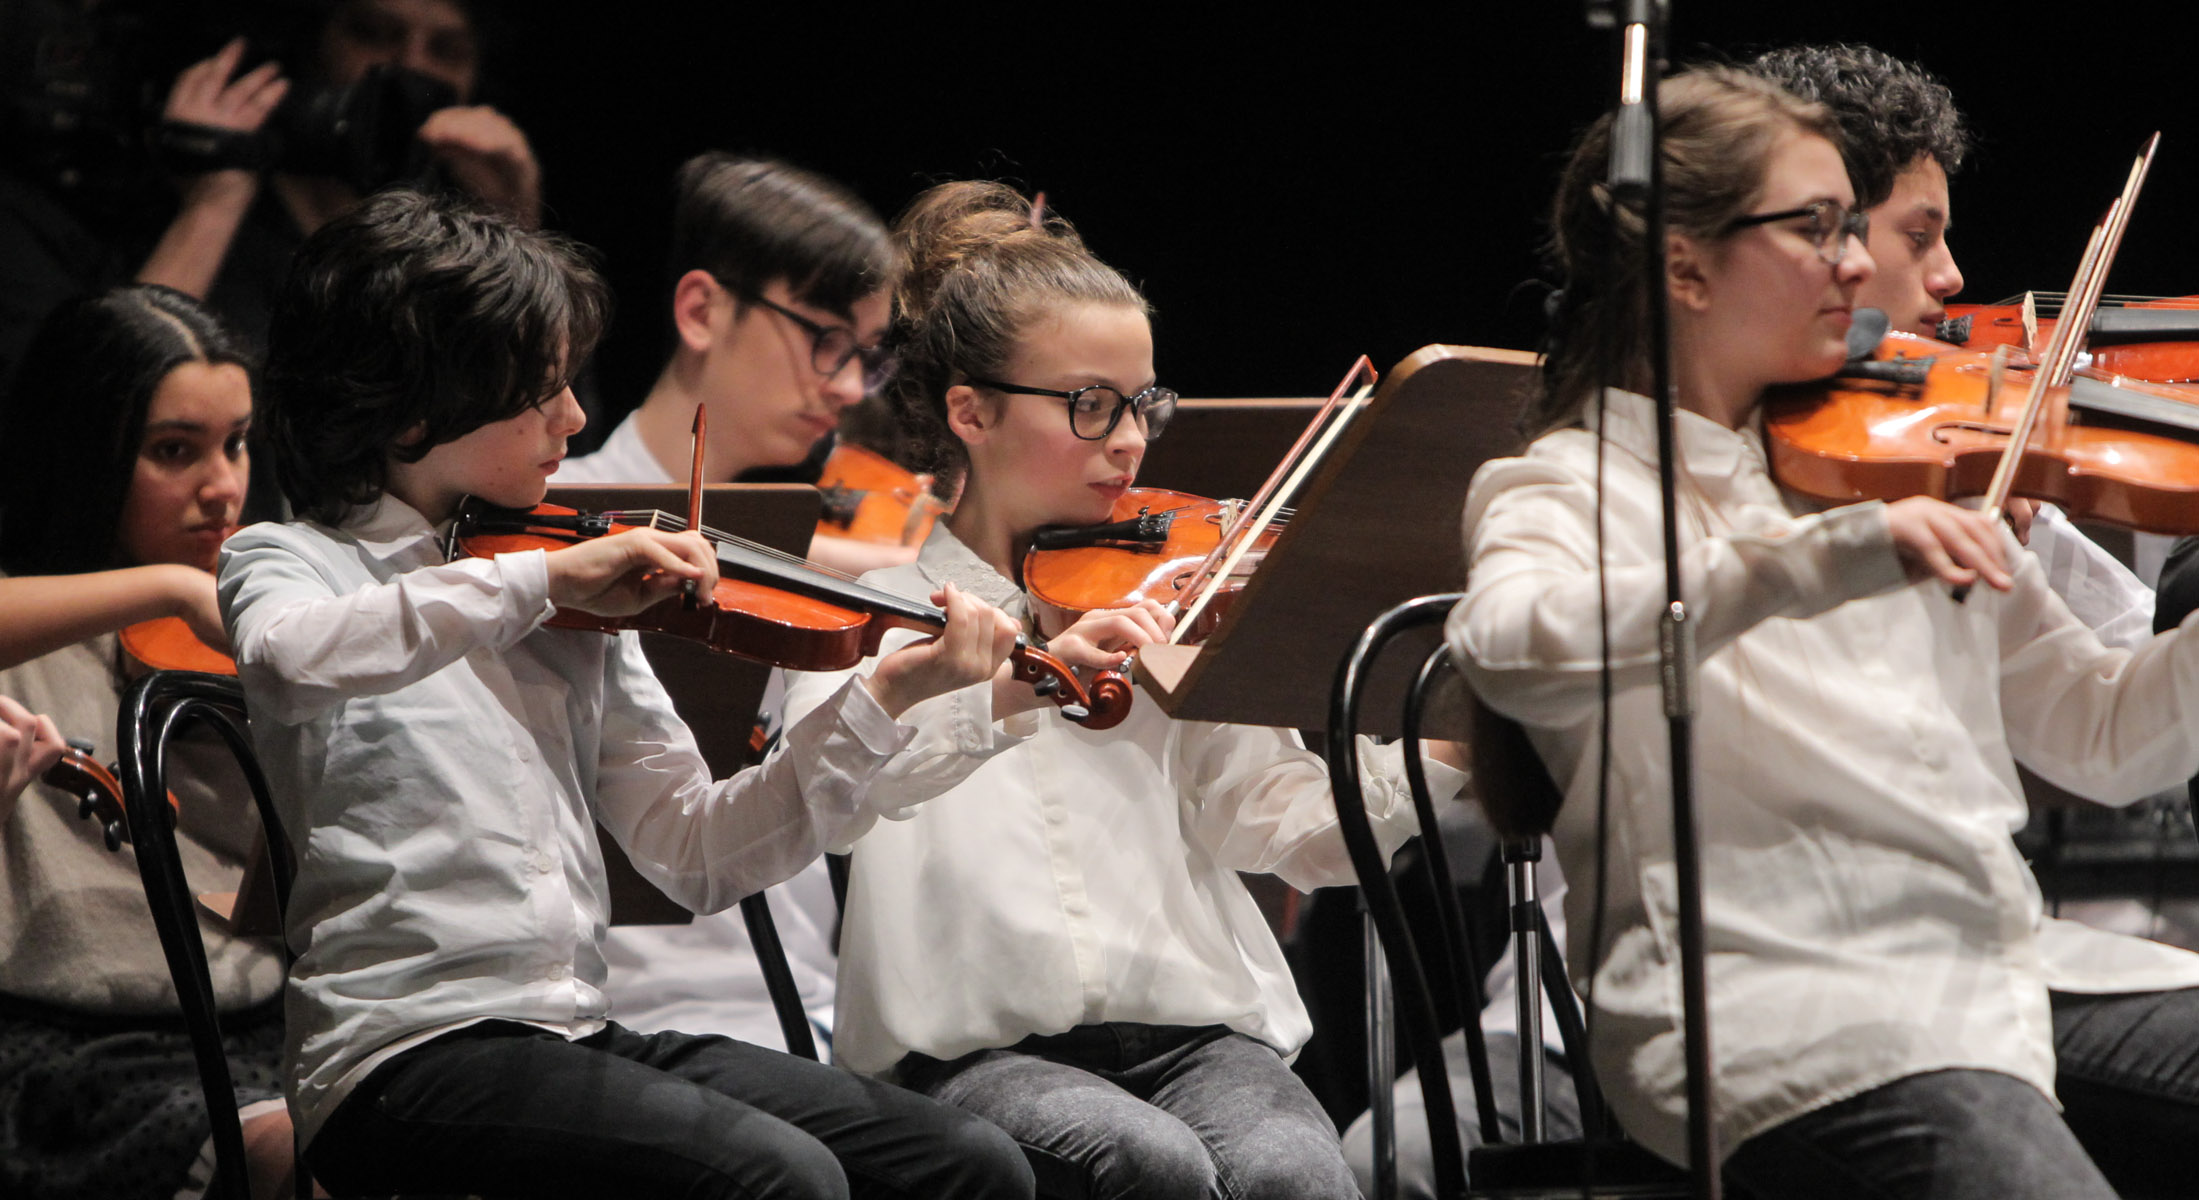 http://www.centropagina.it/wp-content/uploads/2017/02/Pagina-Jesi-in-Progress-Orchestra-bambini-.jpg